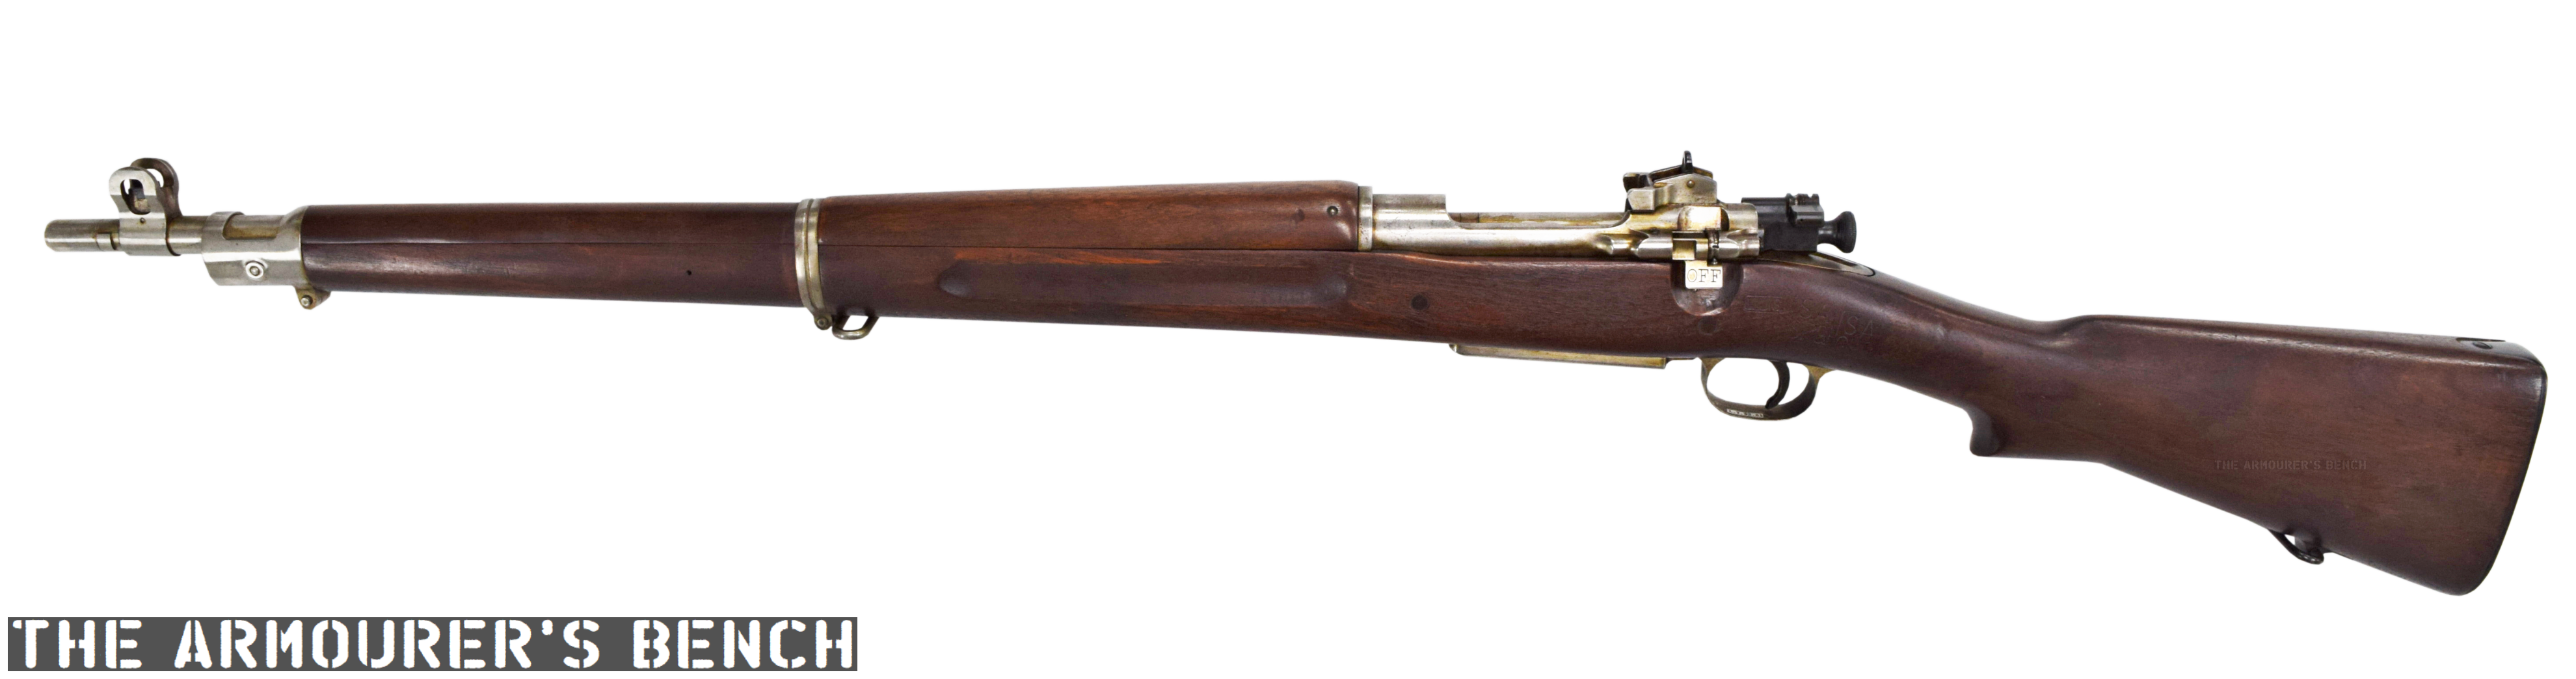 remington_1903_303_leftwm